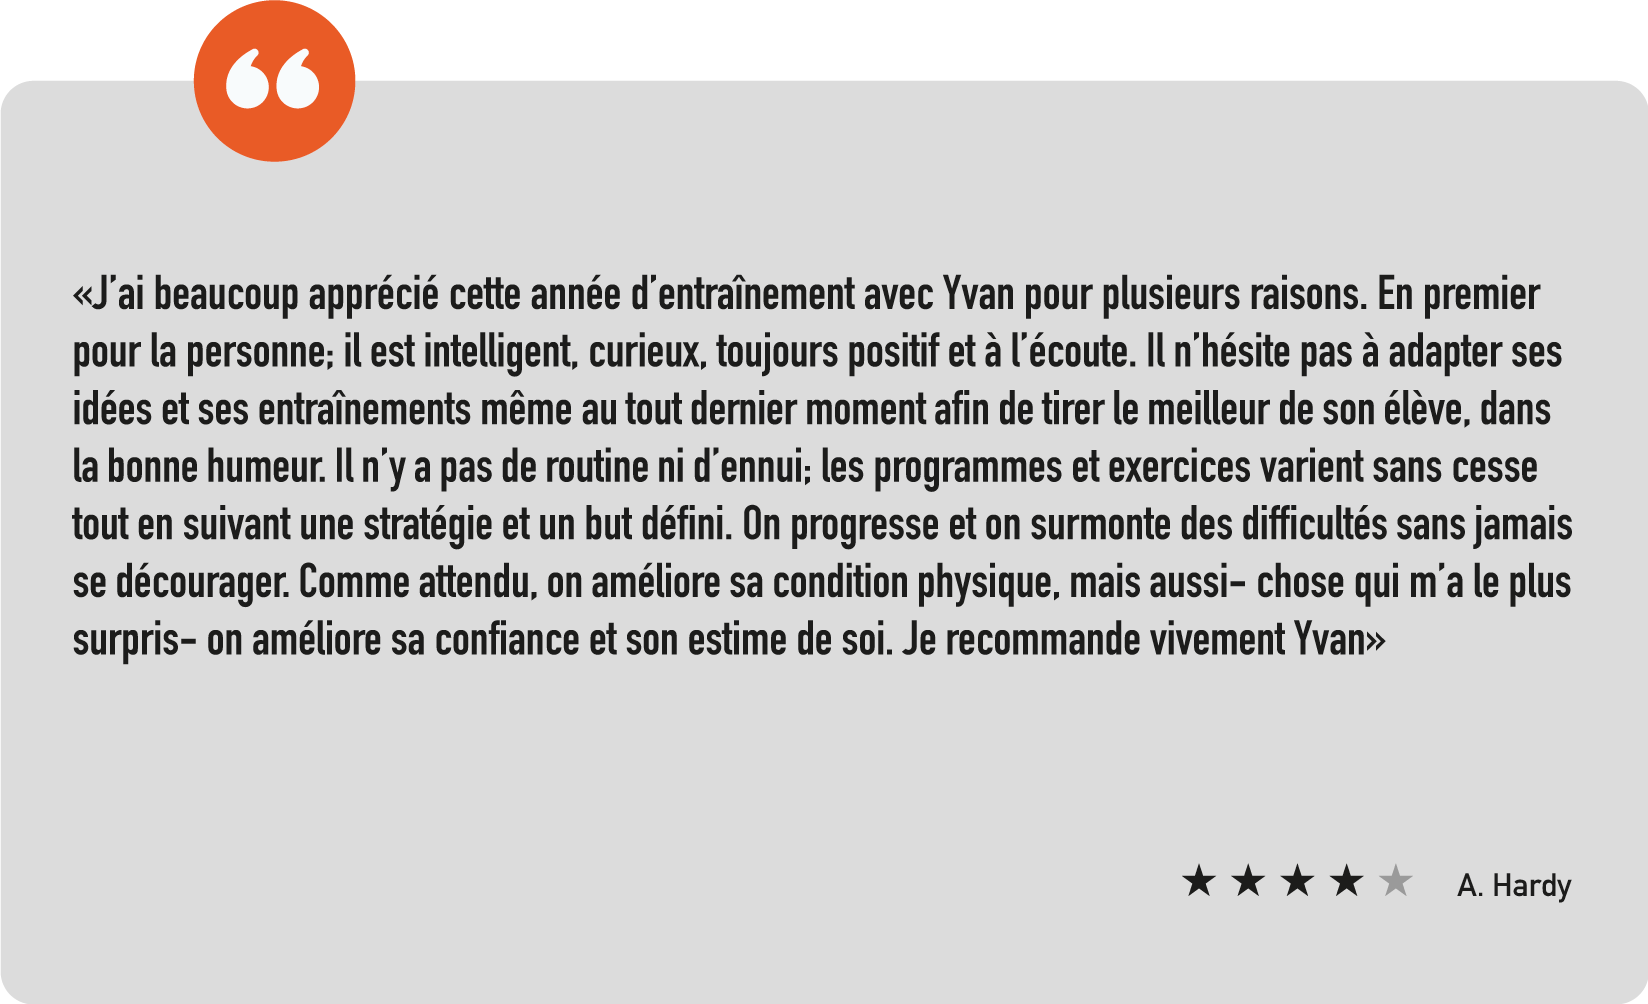 Yvan_Denis_Personal_Trainer_Testimonial_A.Hardy.png